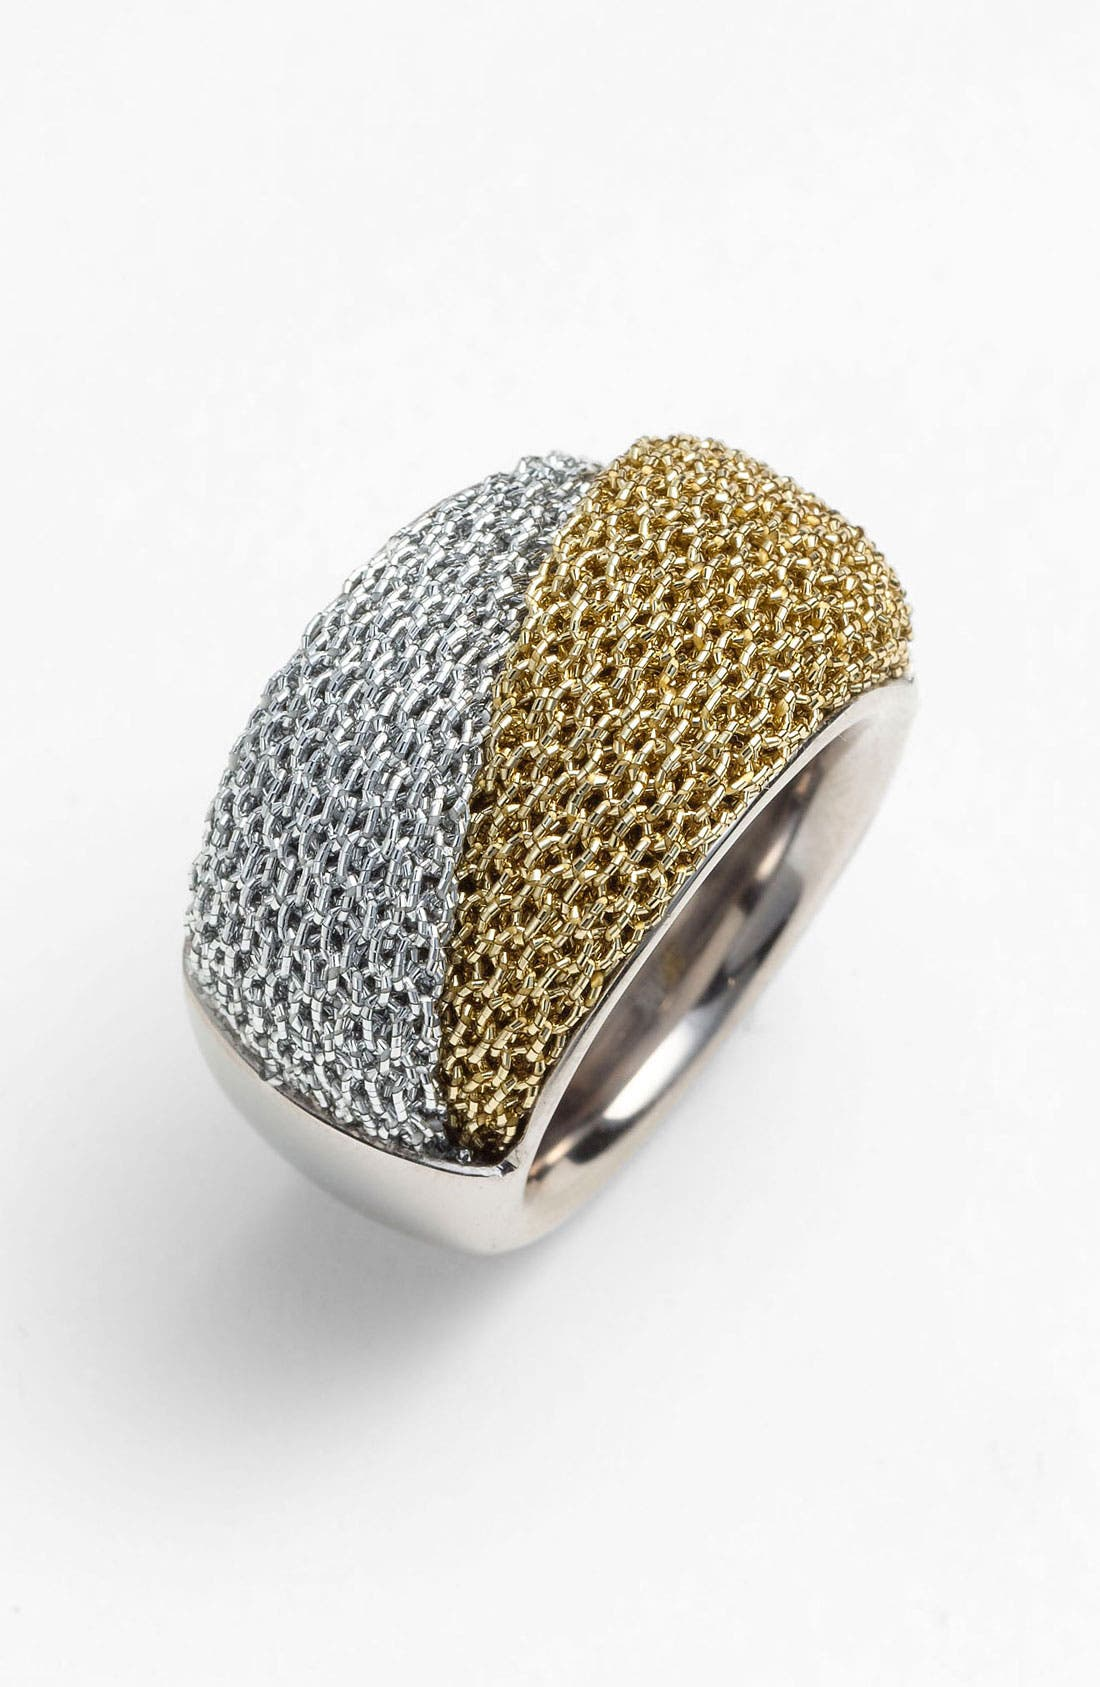 Alternate Image 1 Selected - Adami & Martucci 'Mesh' Two Tone Ring (Nordstrom Exclusive)